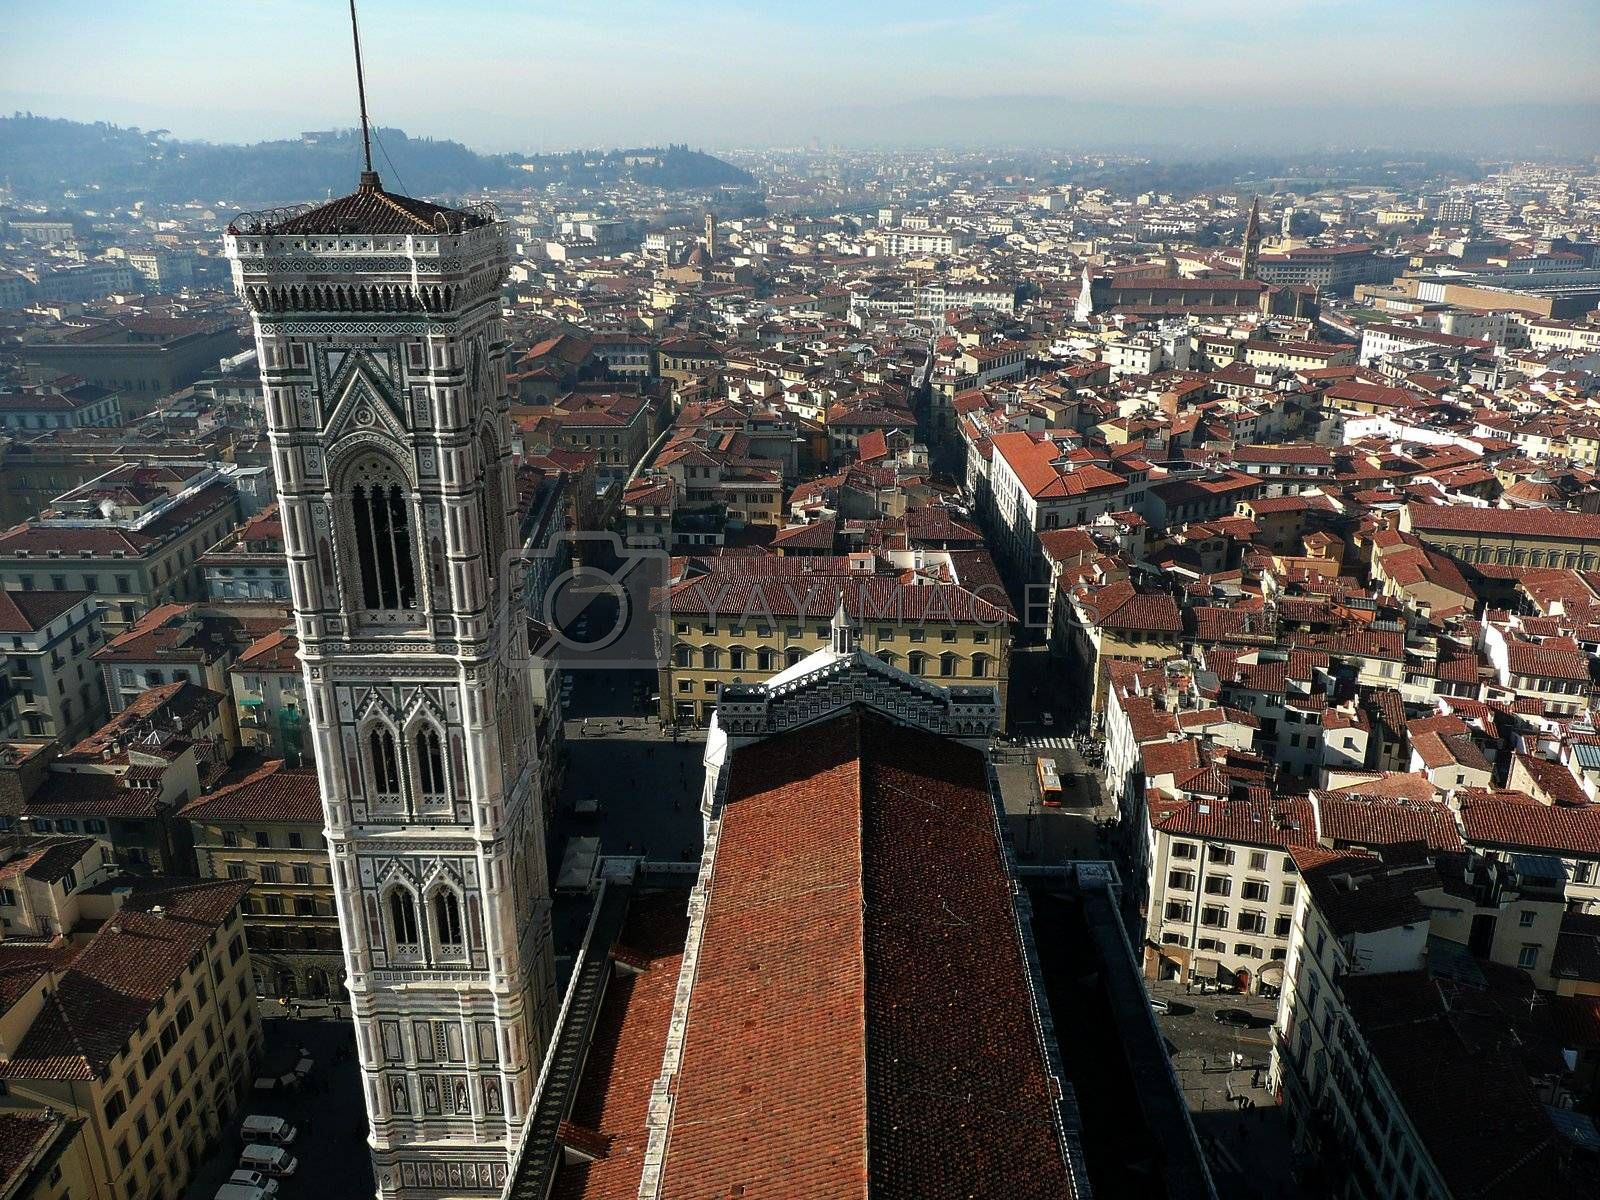 Aerial View of Florence from Brunelleschi Campanile, Italy